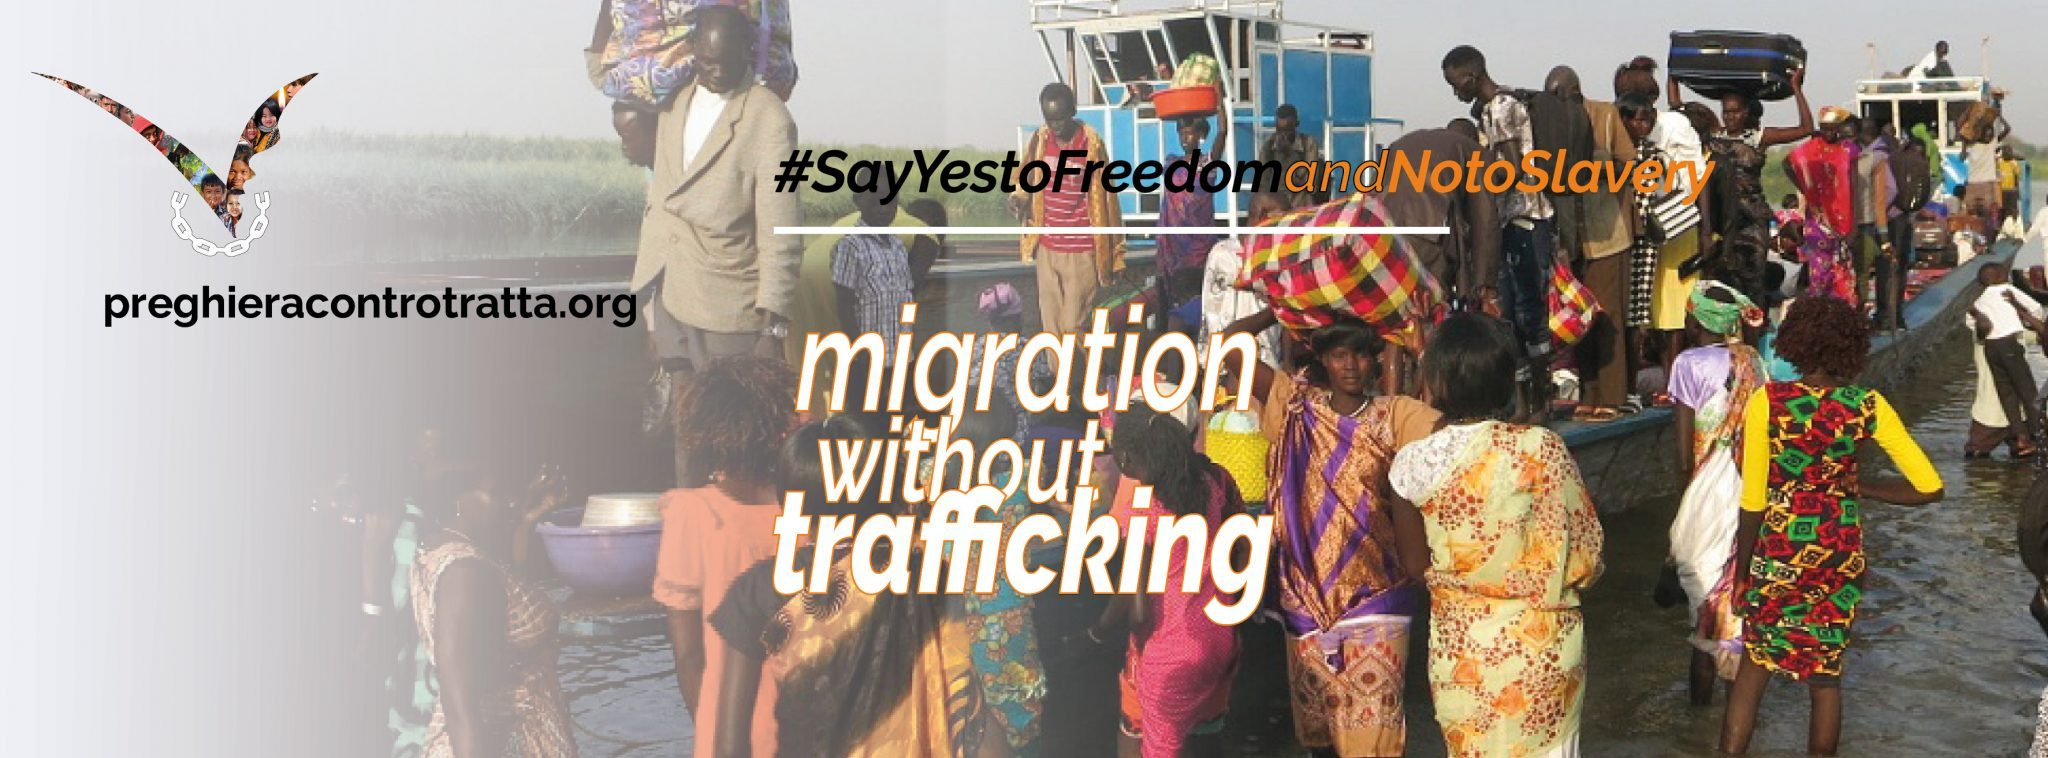 migration without trafficking